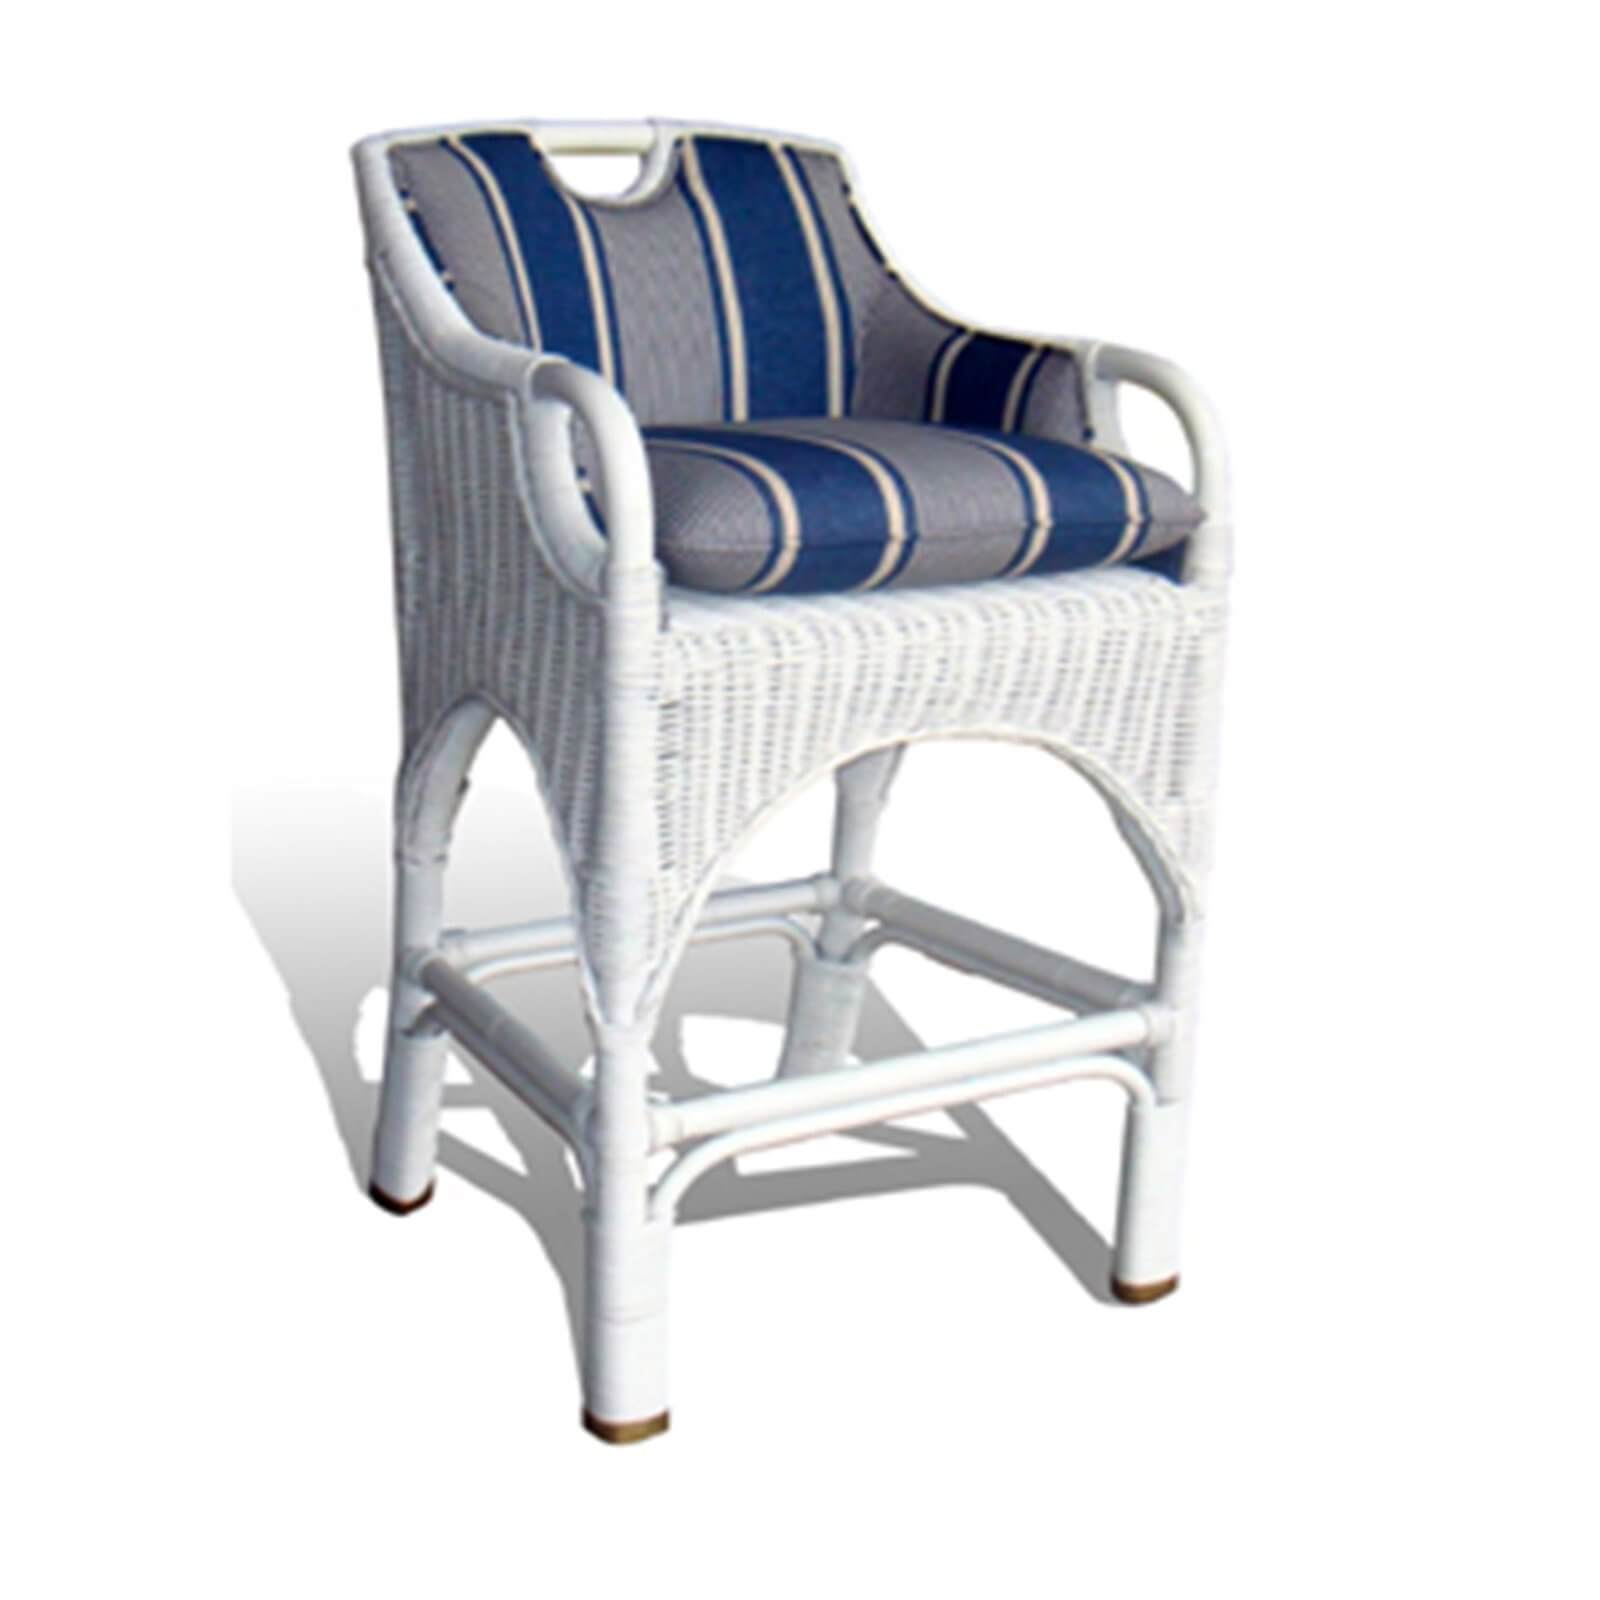 CABANA BAR STOOL - STUART MEMBERY HOME COLLECTION